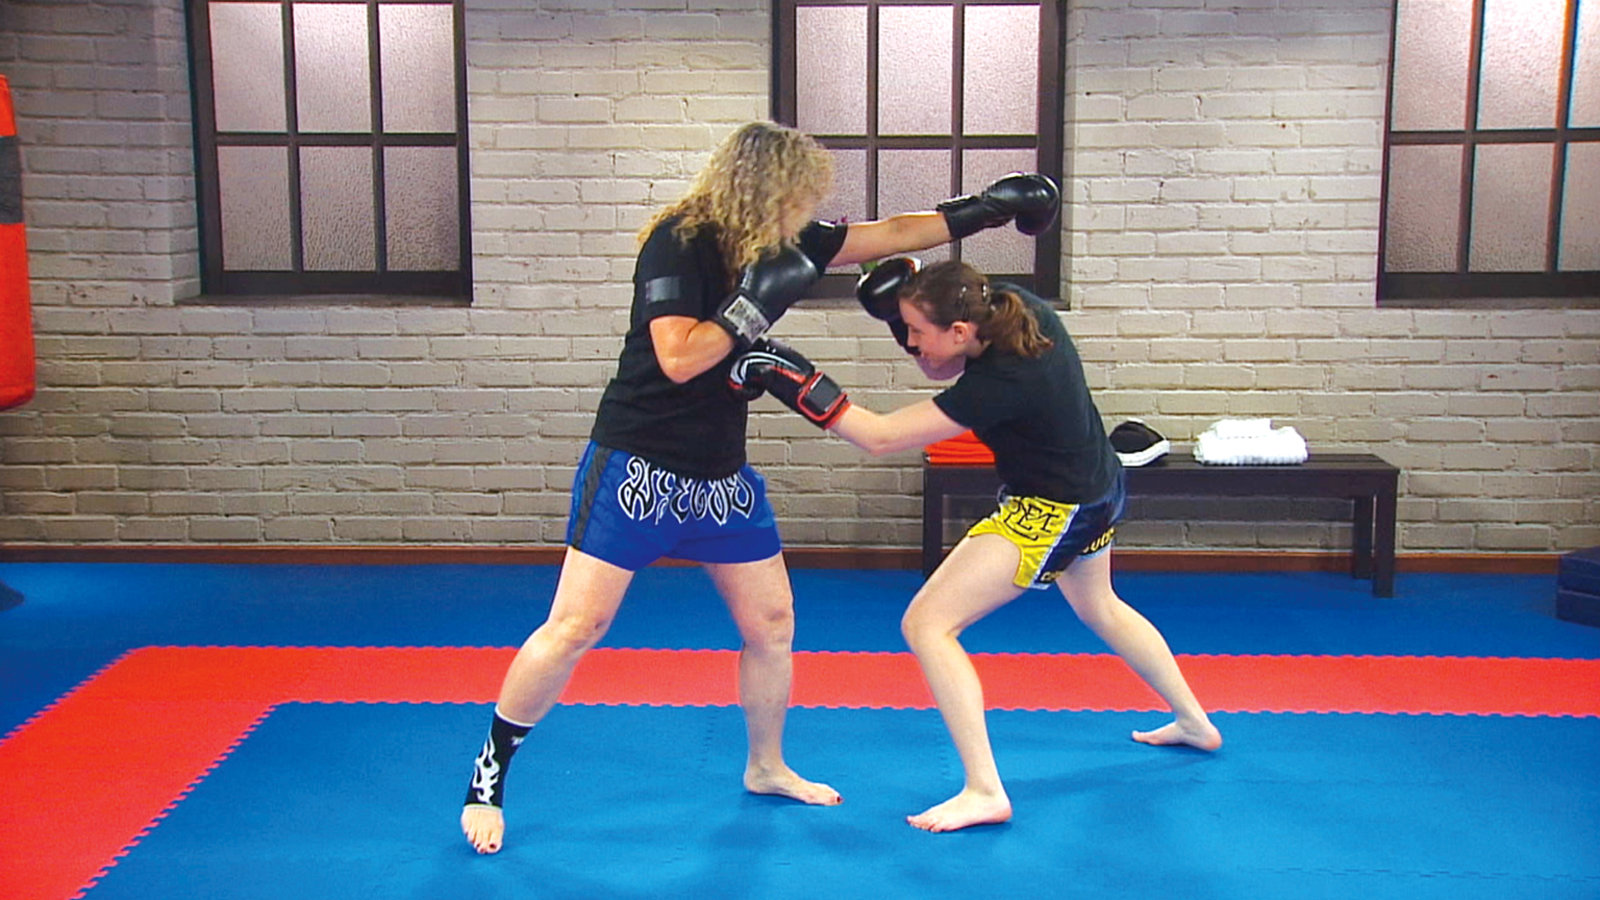 Muay Thai: Kickboxing with Eight Limbs